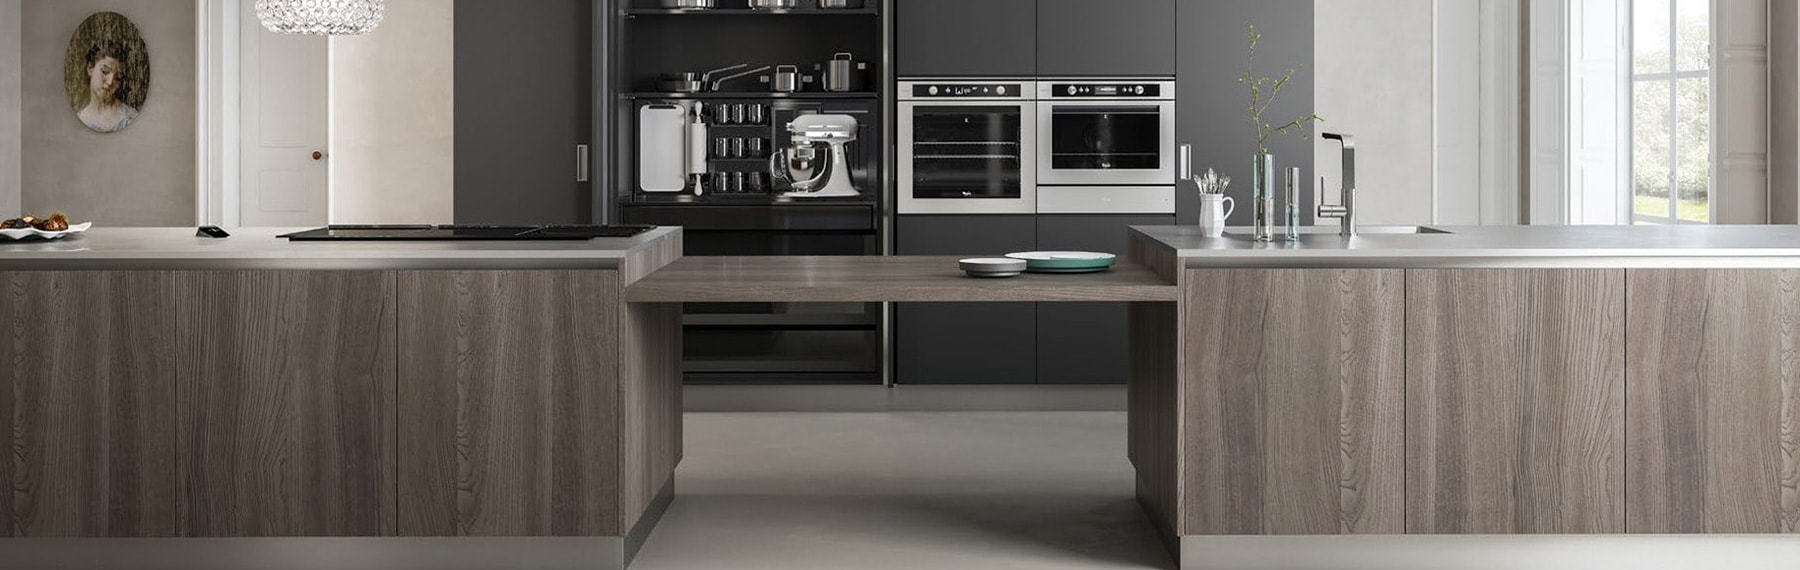 cuisines zecchinon marseille provence cuisiniste marseille. Black Bedroom Furniture Sets. Home Design Ideas